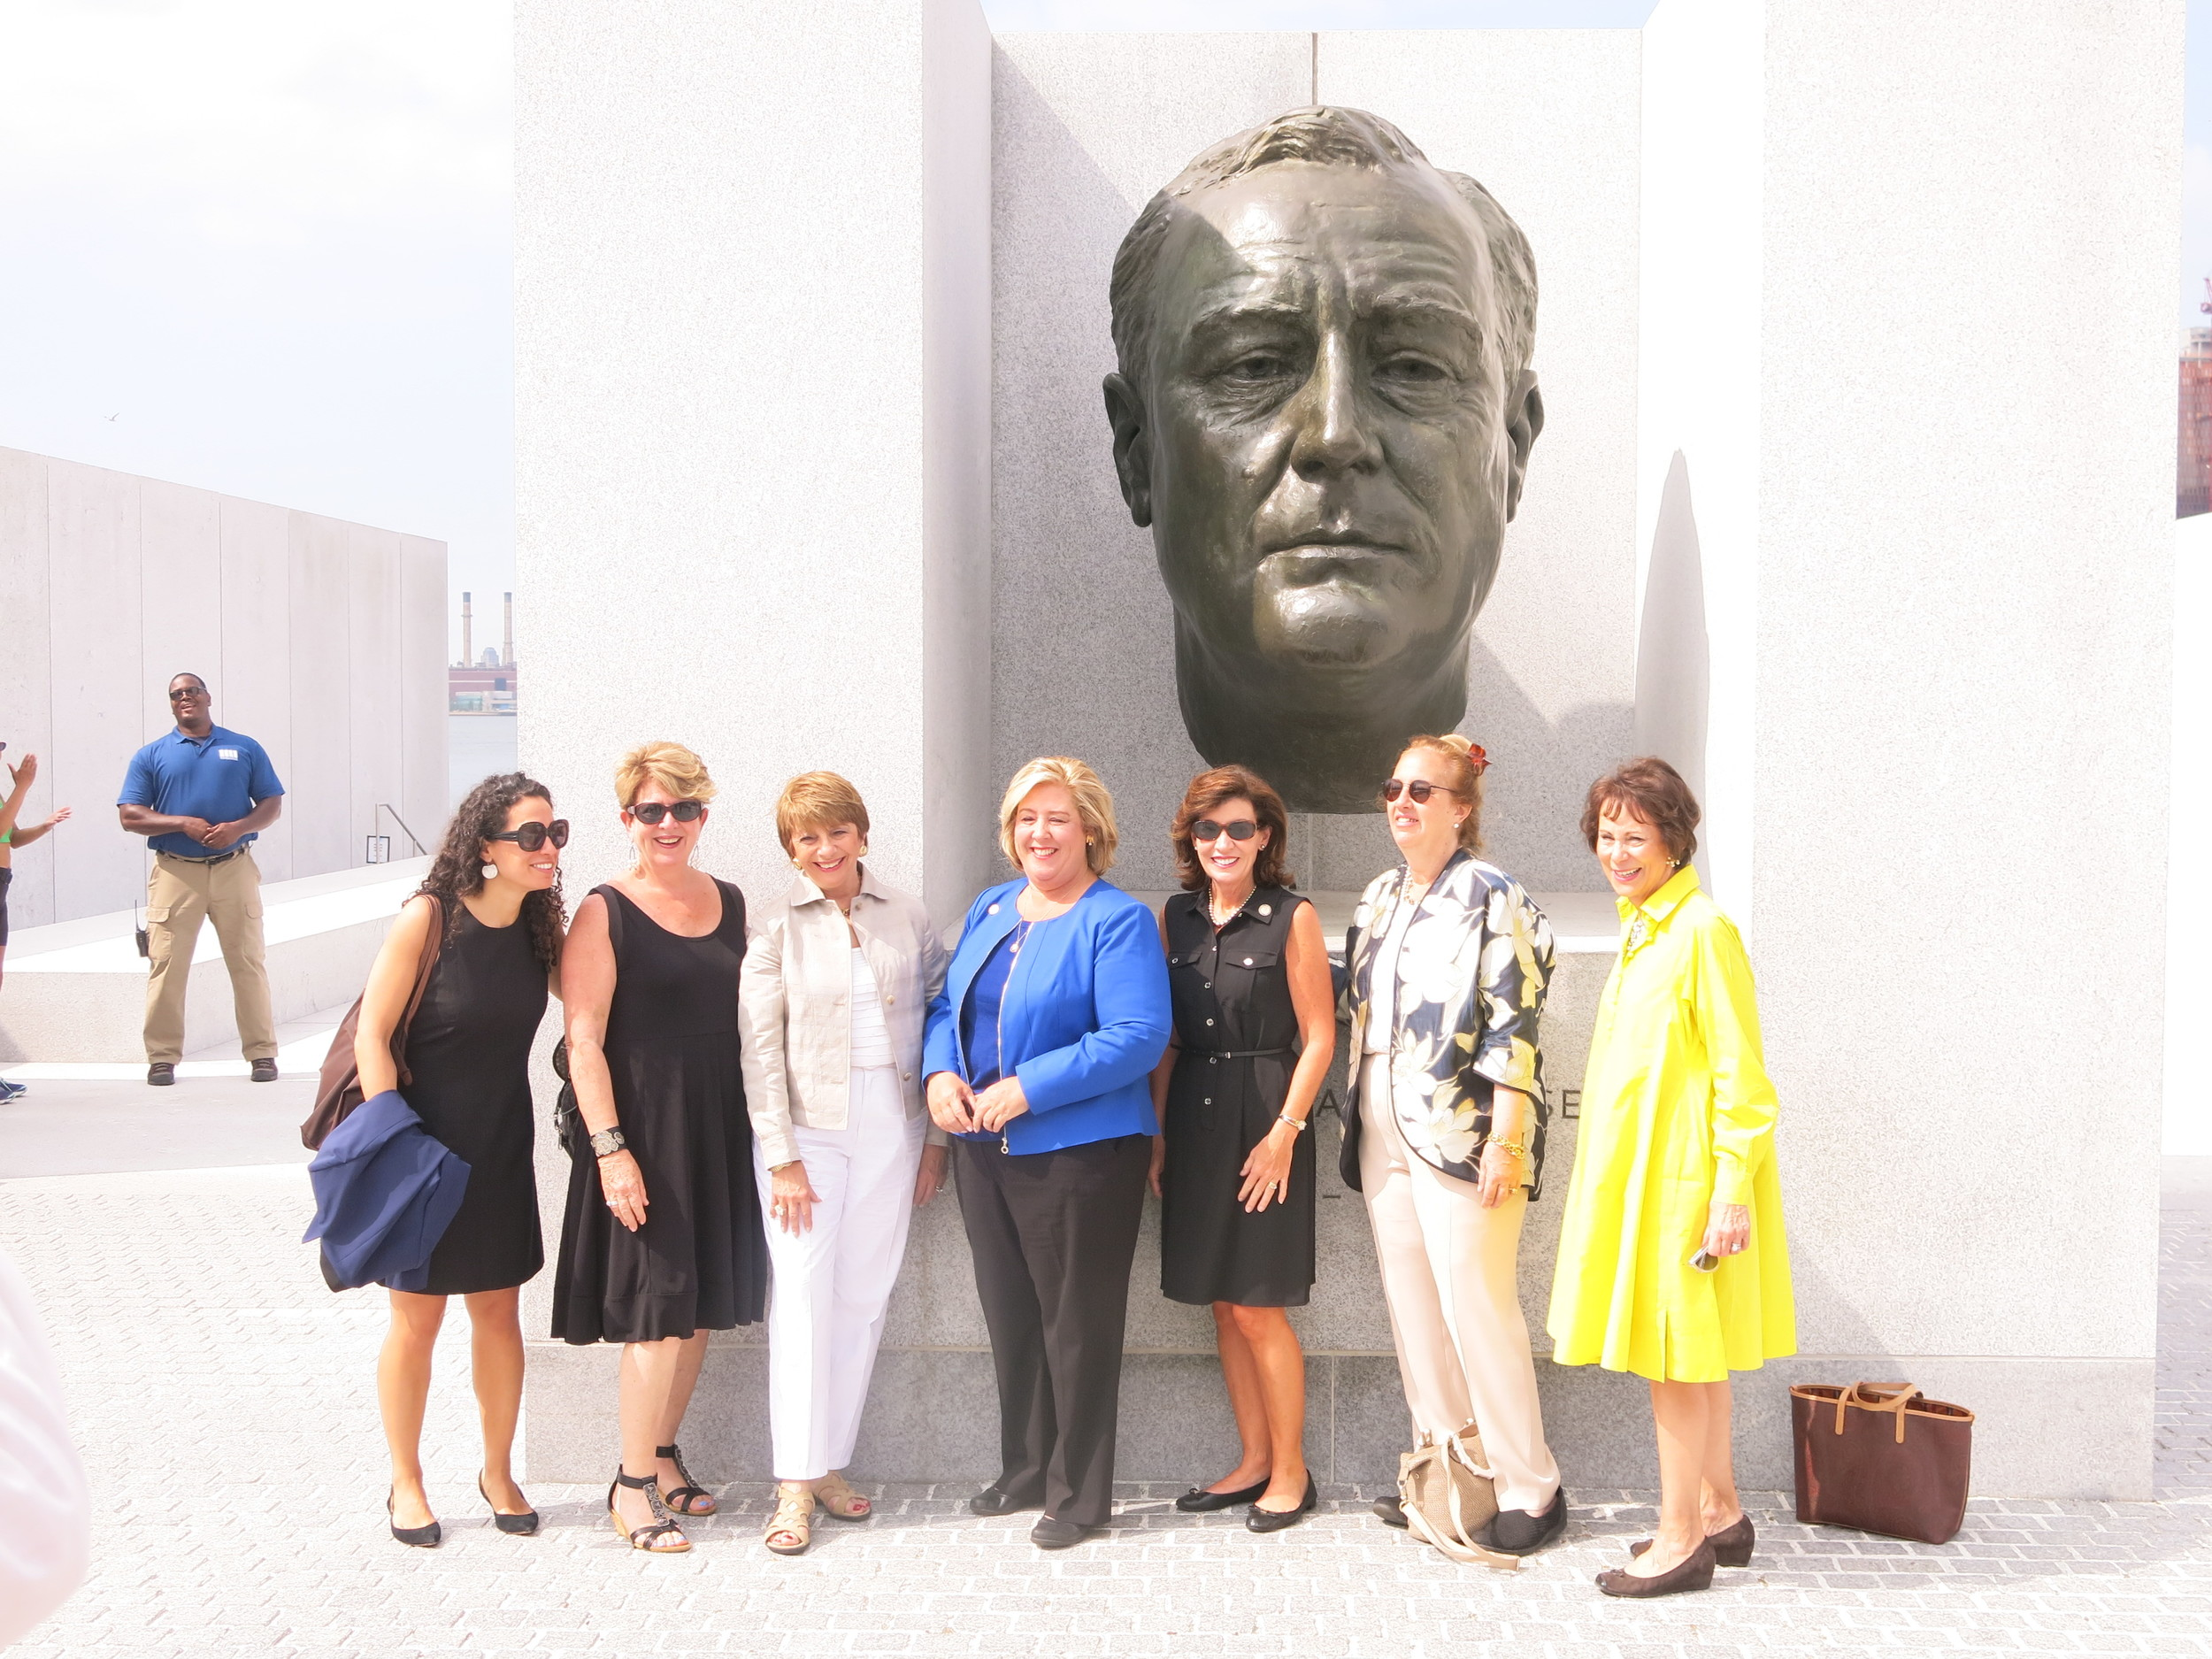 From left to right: Lauren Racusin of Empire State Development, Susan Rosenthal of RIOC, Sally Minard of Four Freedoms Park Conservancy,Assembly Member Rebecca Seawright,Lt. Governor Kathy Hochul,Borough President Gale Brewer,and Barbara Shattuck Kohn of Four Freedoms Park Conservancy